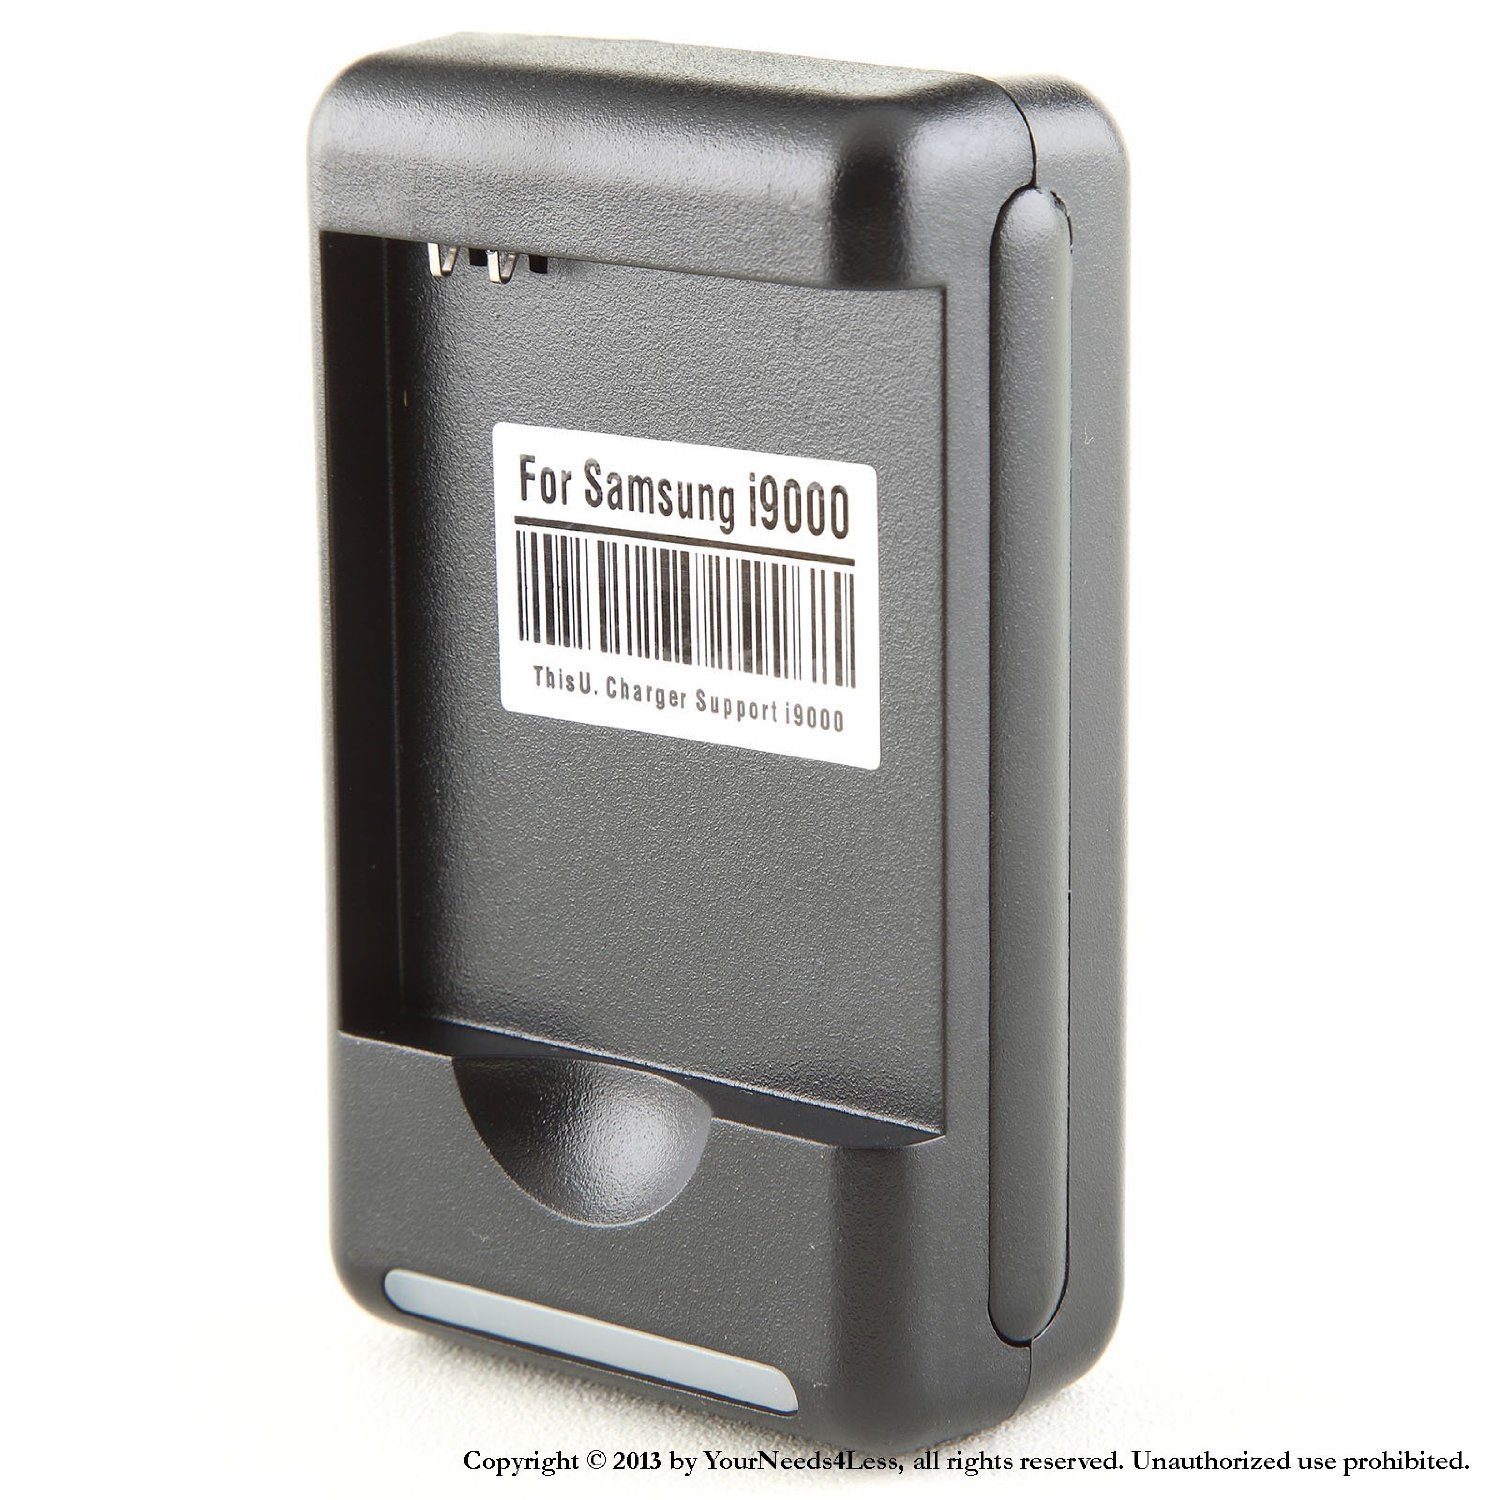 YN4L® Wall Home AC Desktop Dock Battery Charger For Standard battery for Galaxy S Epic Touch 4G D710 Sprint; Samsung Galaxy S II R760; Samsung Galaxy S Epic 4G SPH- D700; Samsung Galaxy S i500 Fasciate Mesmerize; Samsung Galaxy S Captivate i897; Samsung Galaxy S GT i9000; T959 Vibrant